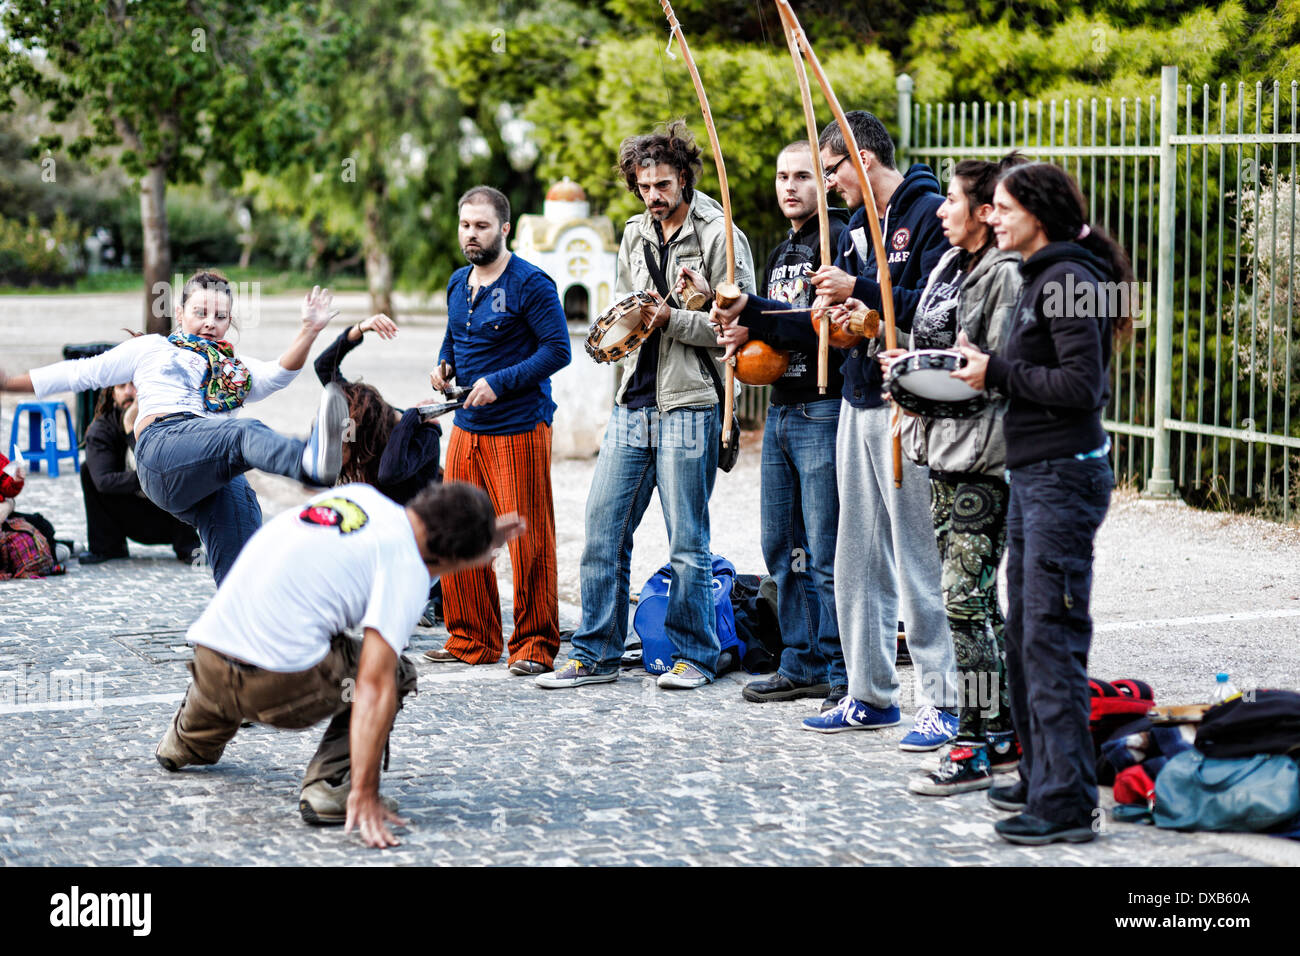 Capoeira in the street of Athens, Greece - Stock Image